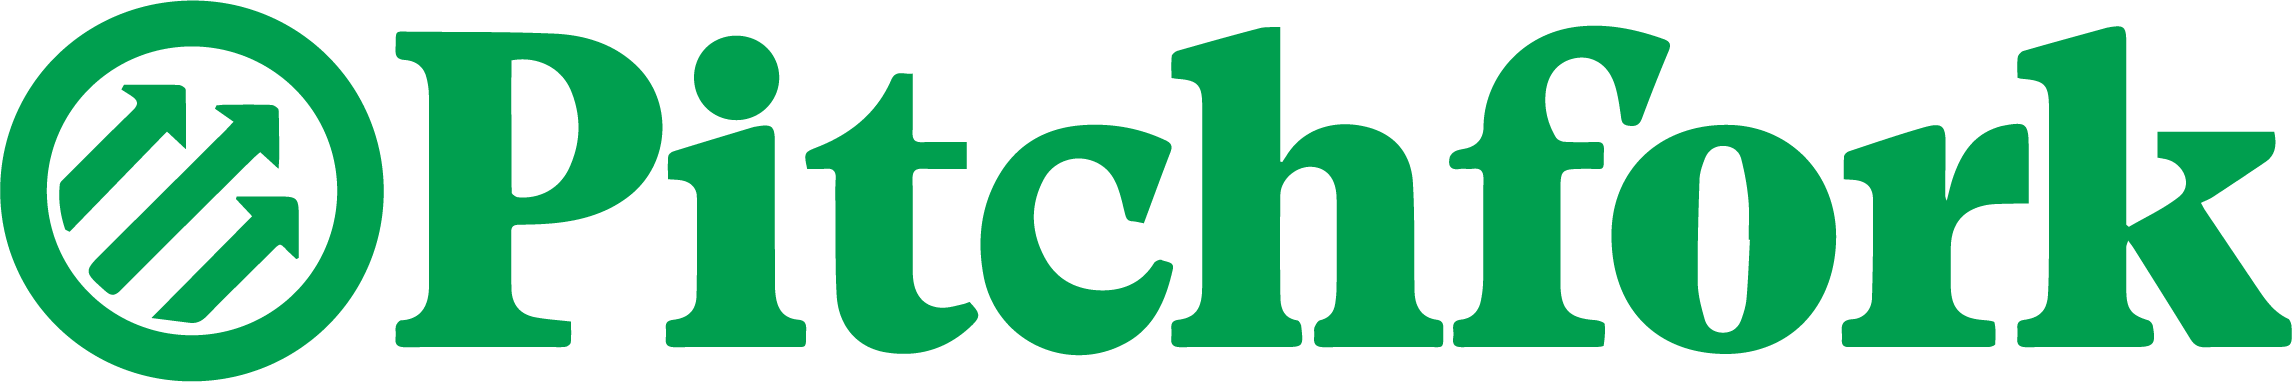 PITCH.png